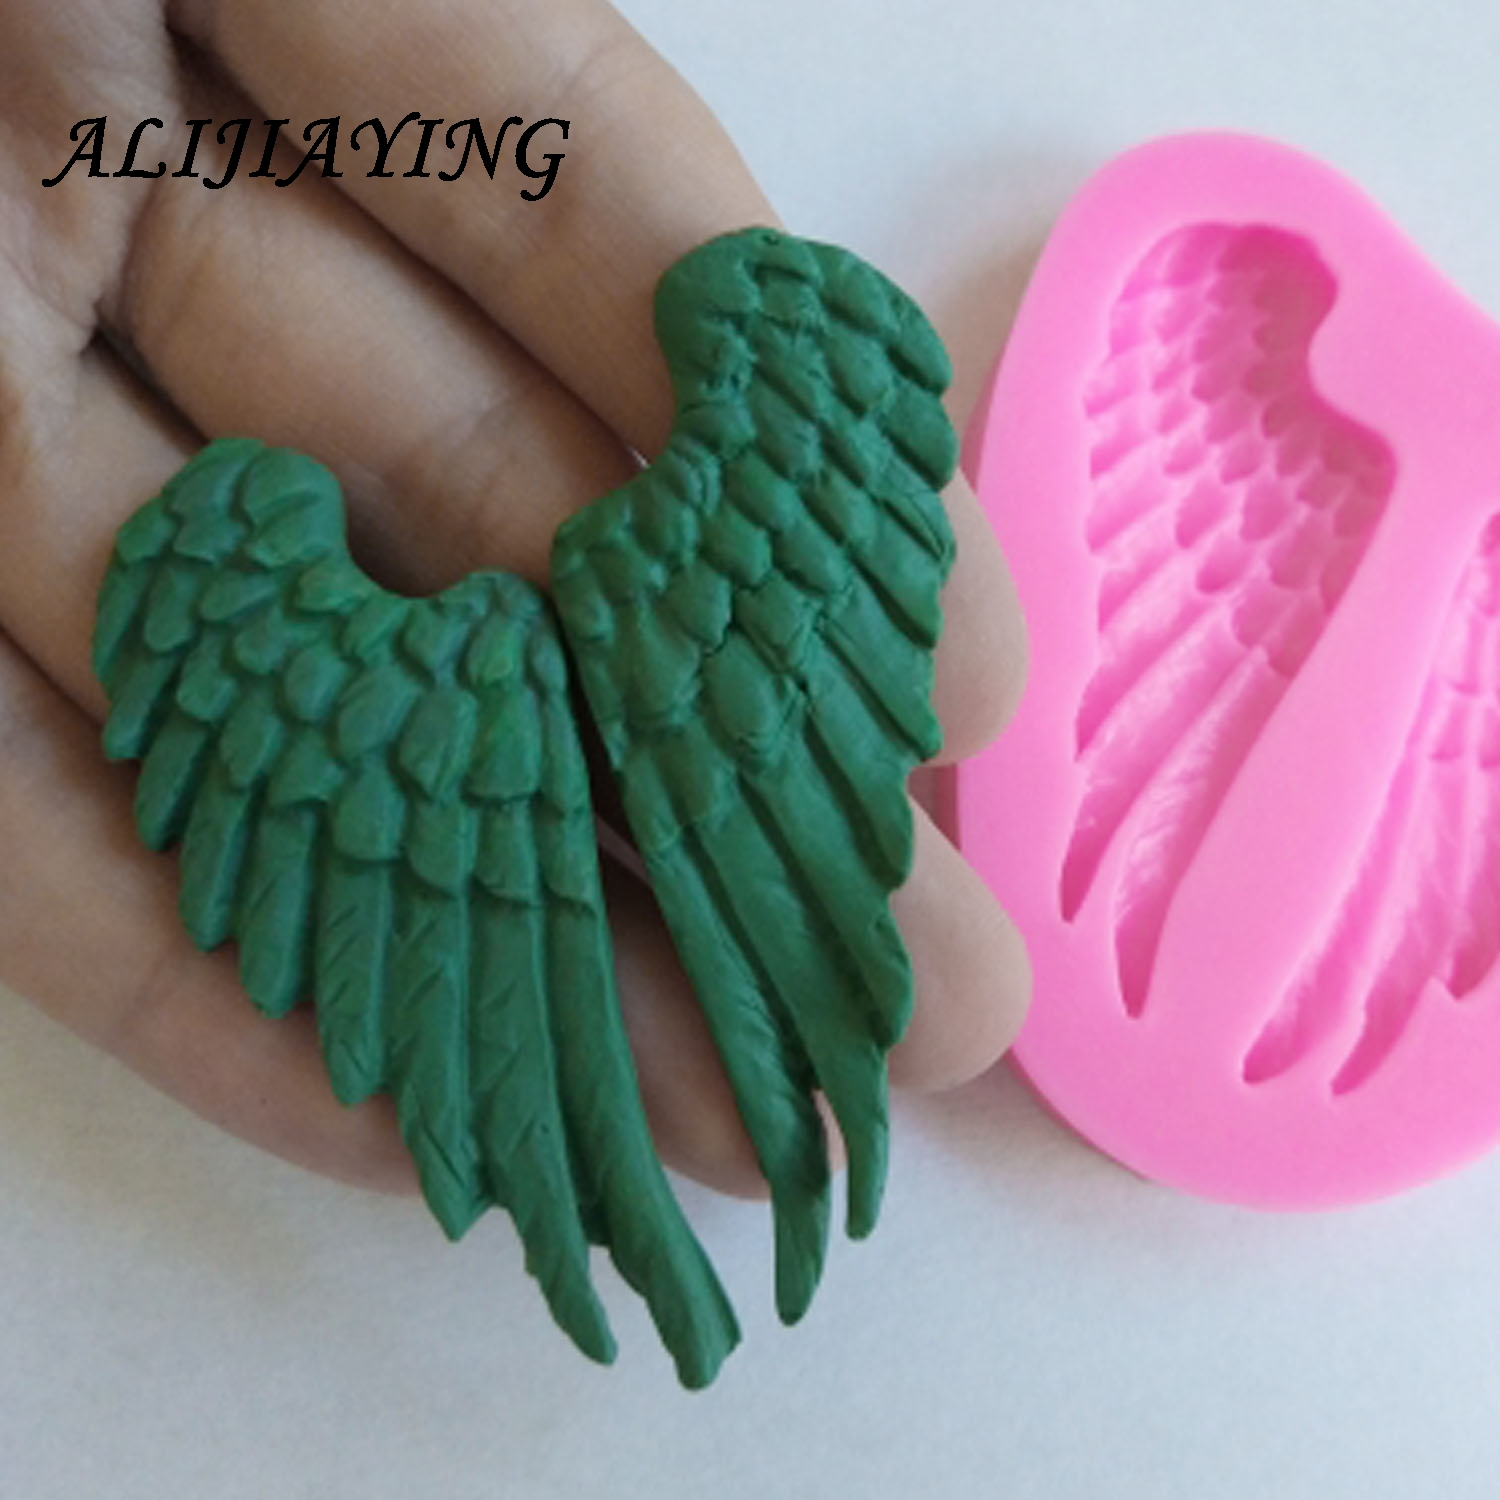 1Pcs Baby Angel Wings Silicone Mold Fondant Cake Decorating Tools Sugarcraft Chocolate Candy Clay Mould Cupcake Mold D0227